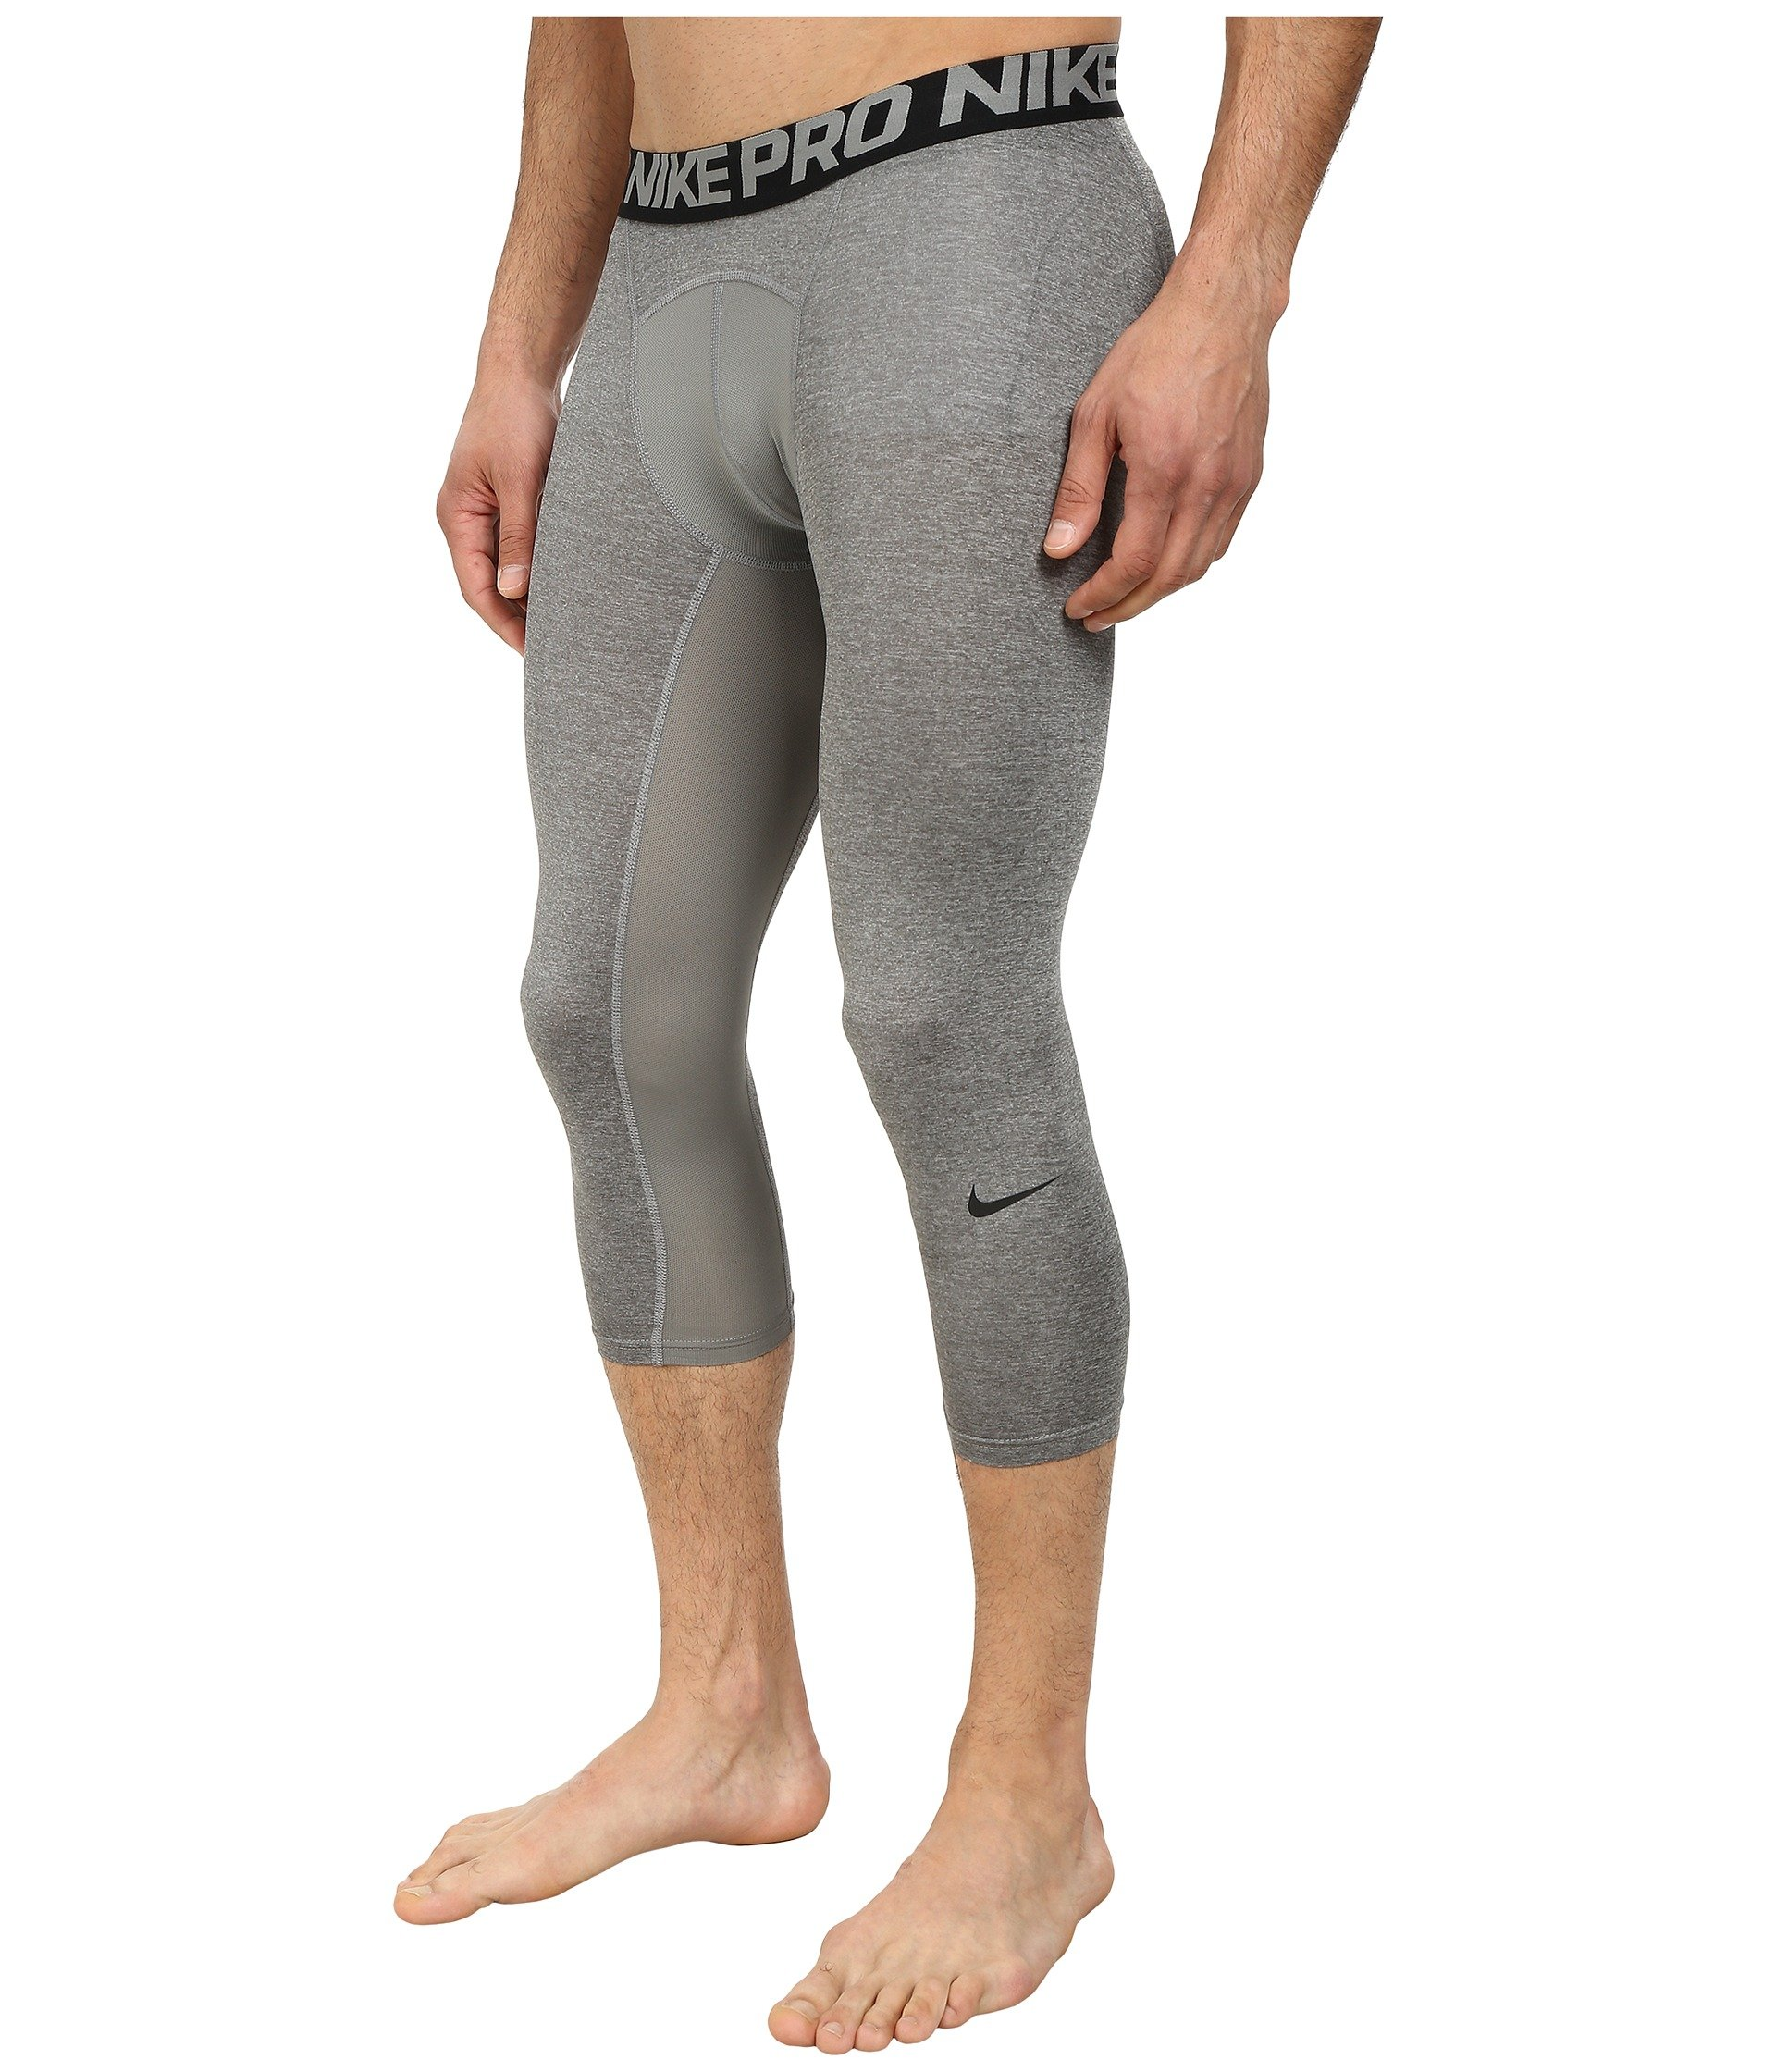 Nike Men's Pro 3/4 Tights (3XL, Carbon Heather/Black/Black) by Nike (Image #3)